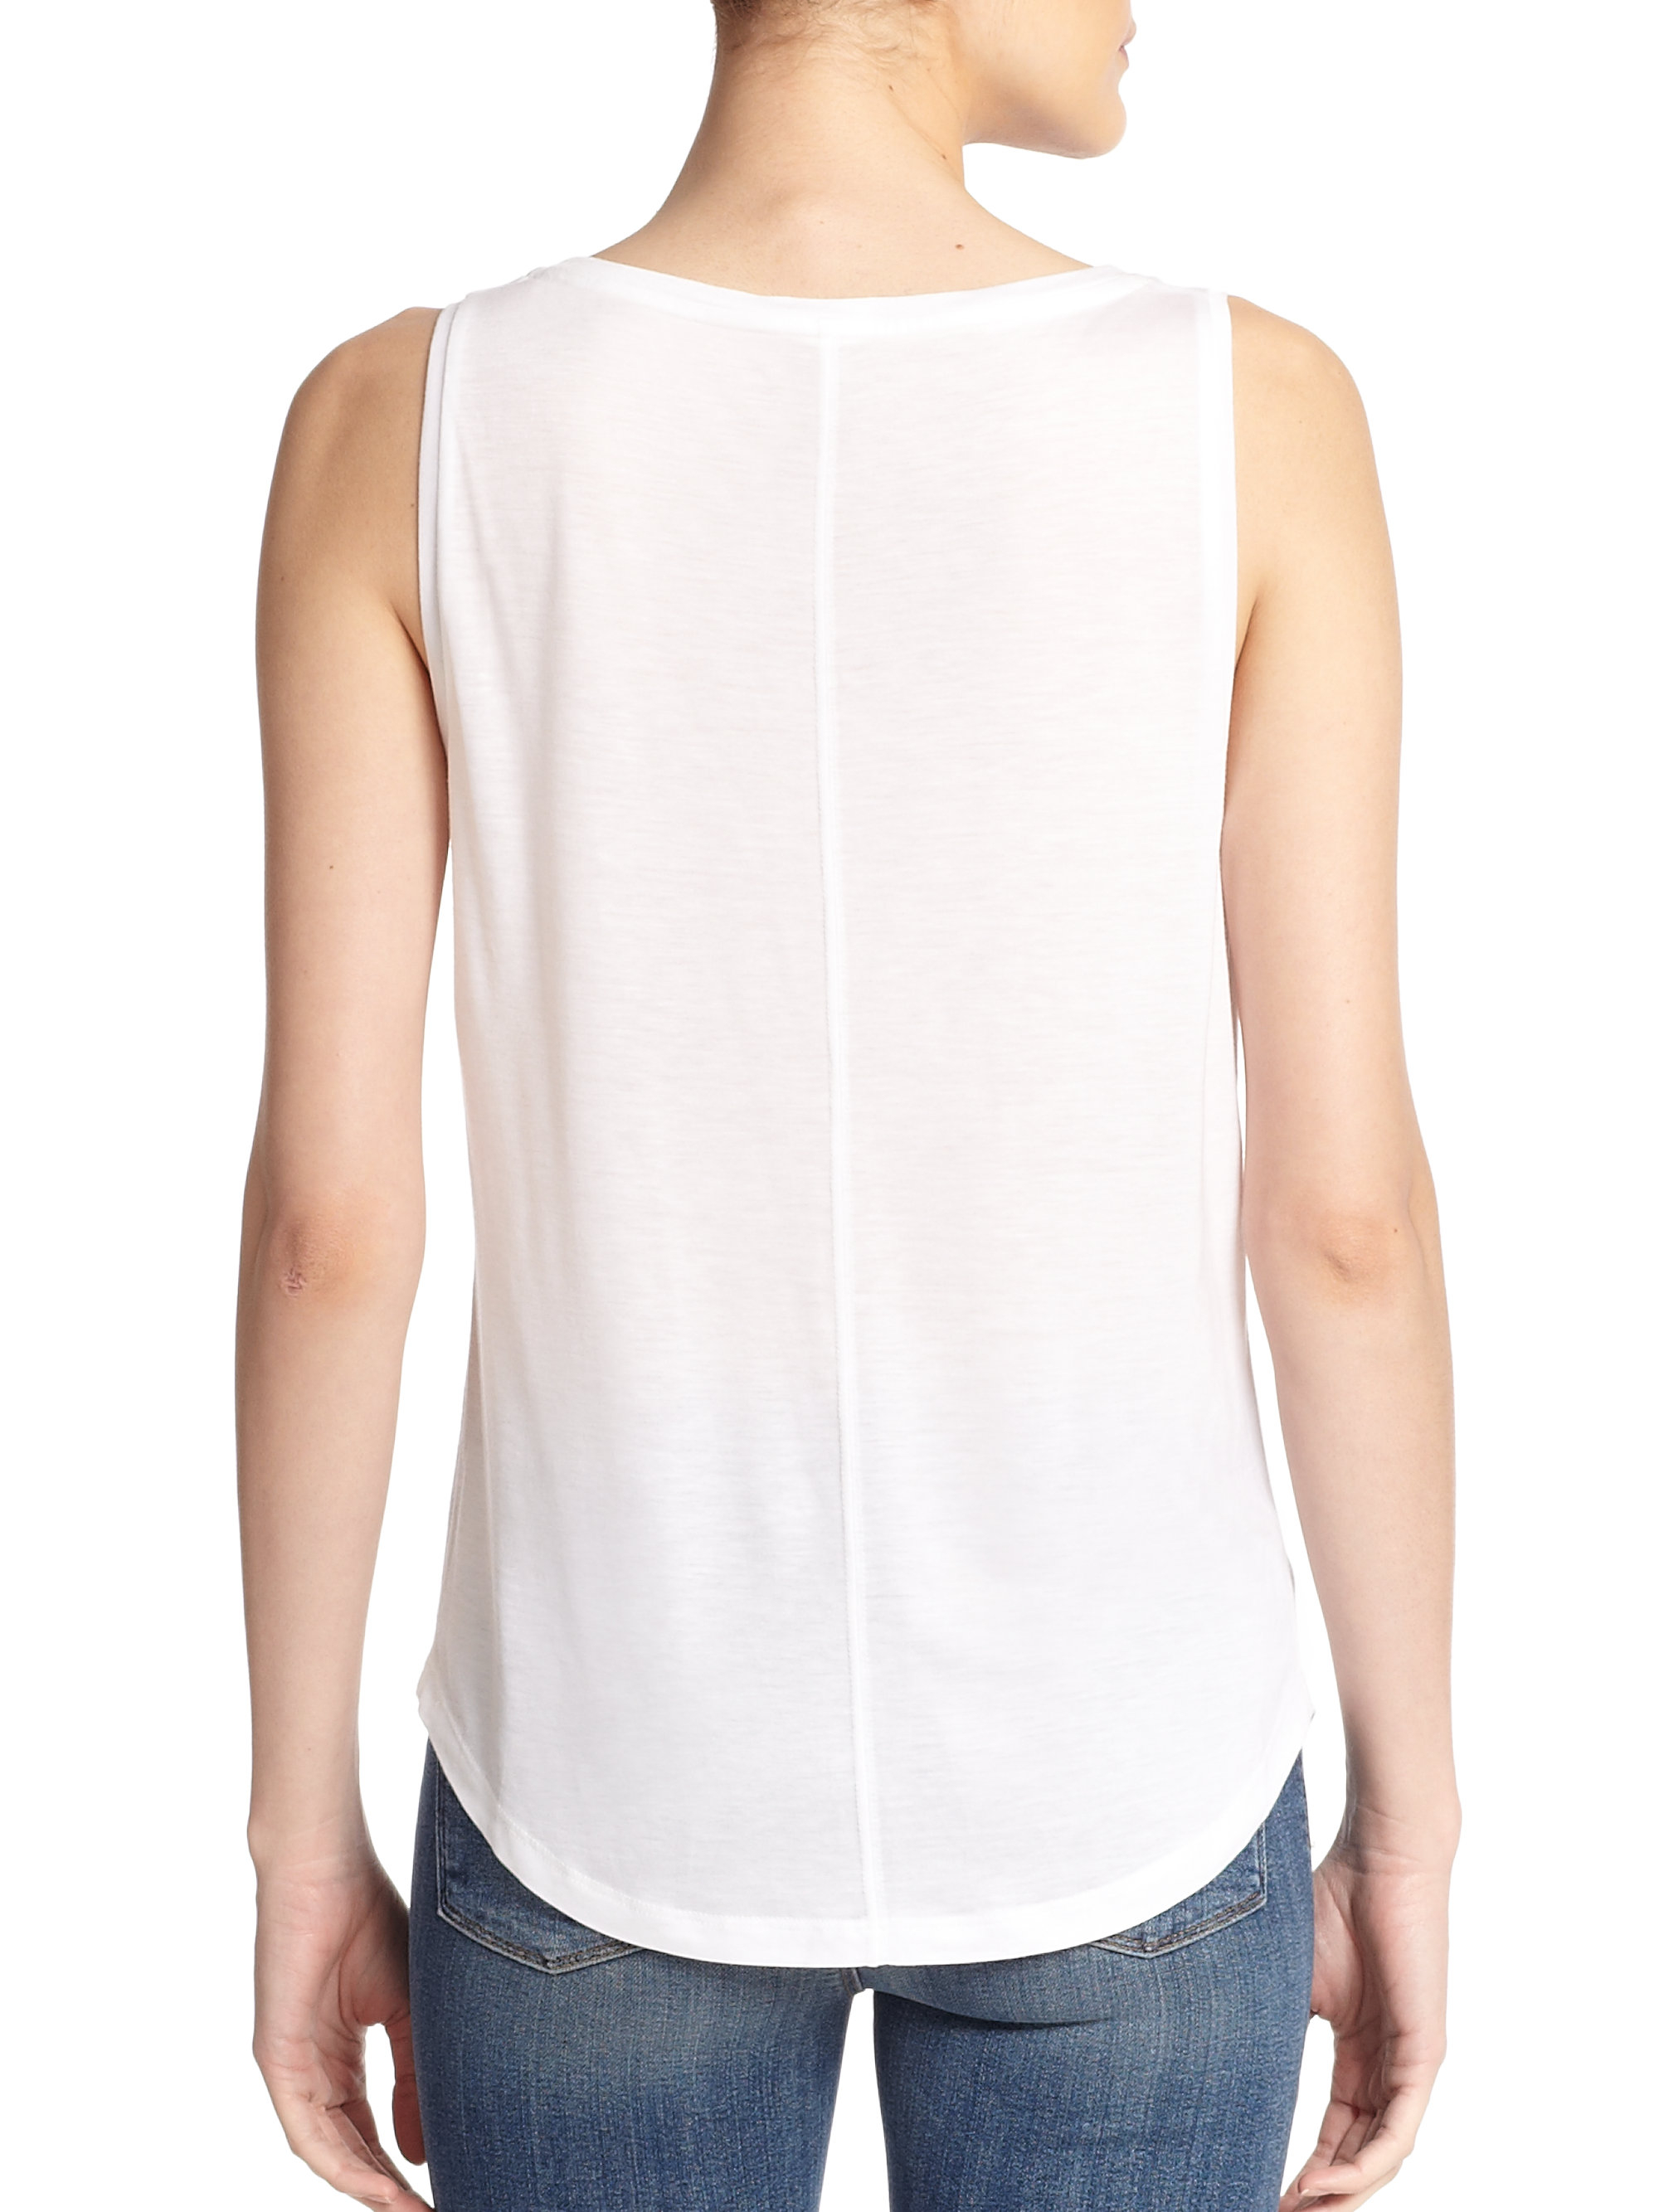 J Brand Sleeveless Scoop Neck Top For Sale The Cheapest Discount Best qPHvKW